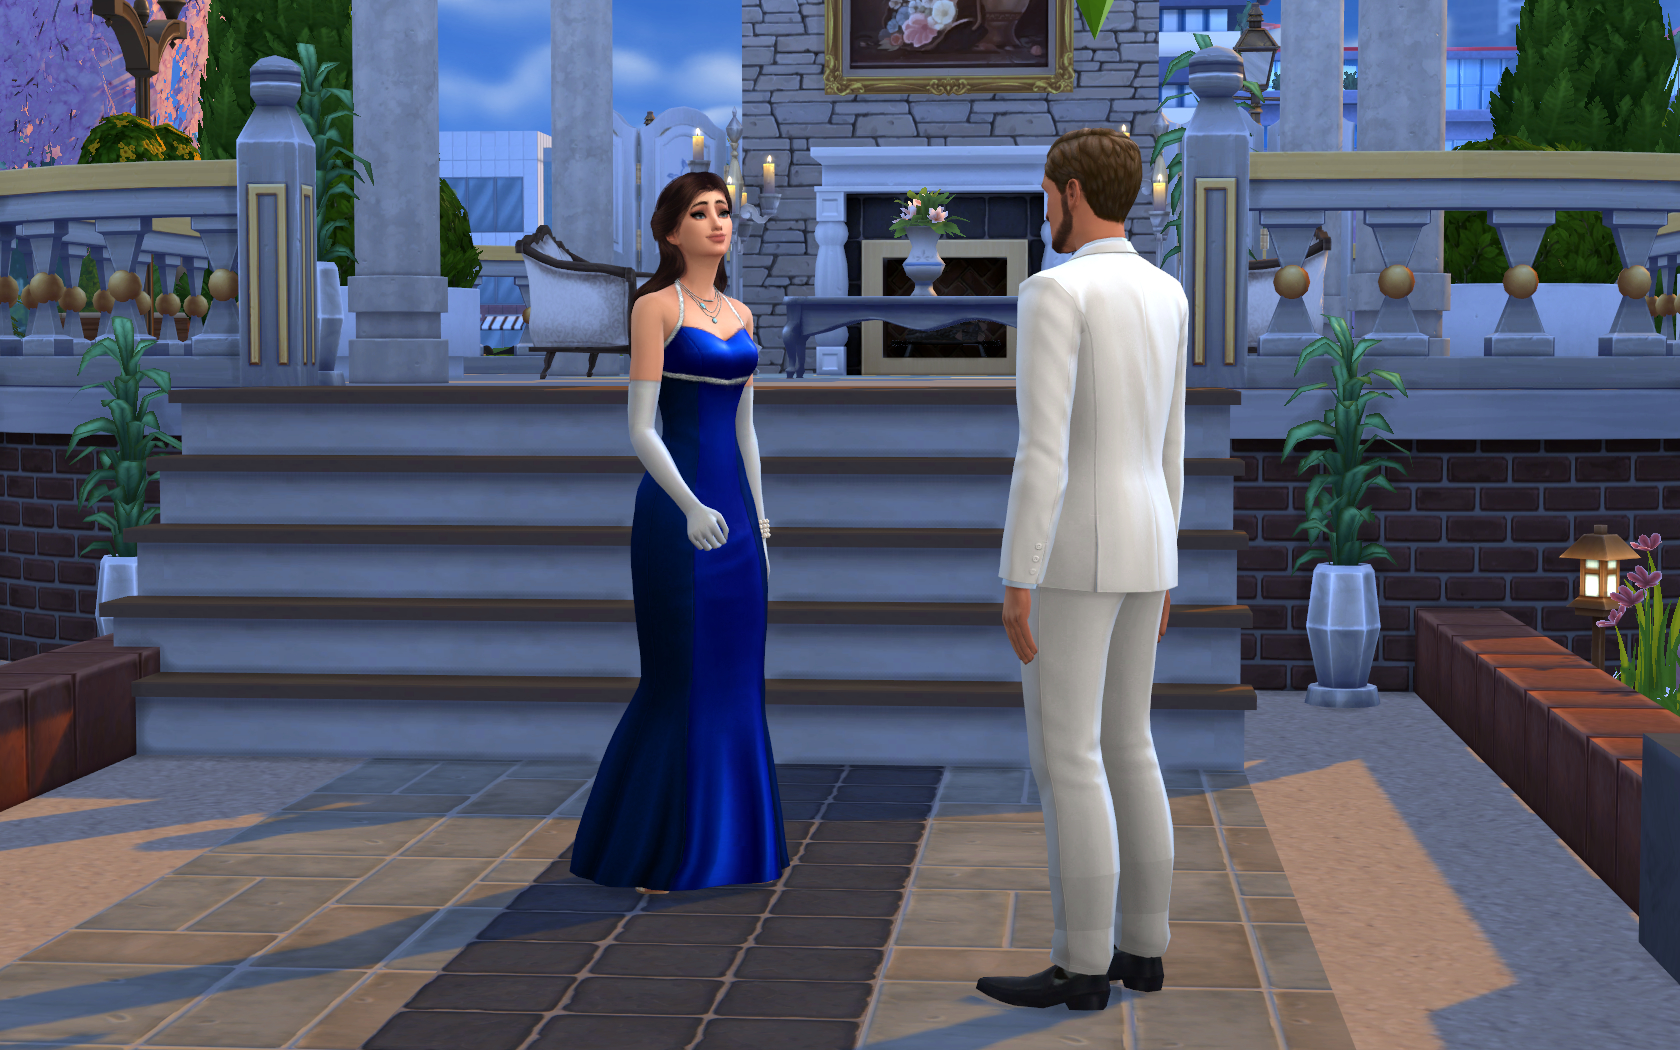 THE BACHELOR OF NEWCREST ~ BY MEESHELBY - Page 2 28375450040_d3fbe95cdf_o